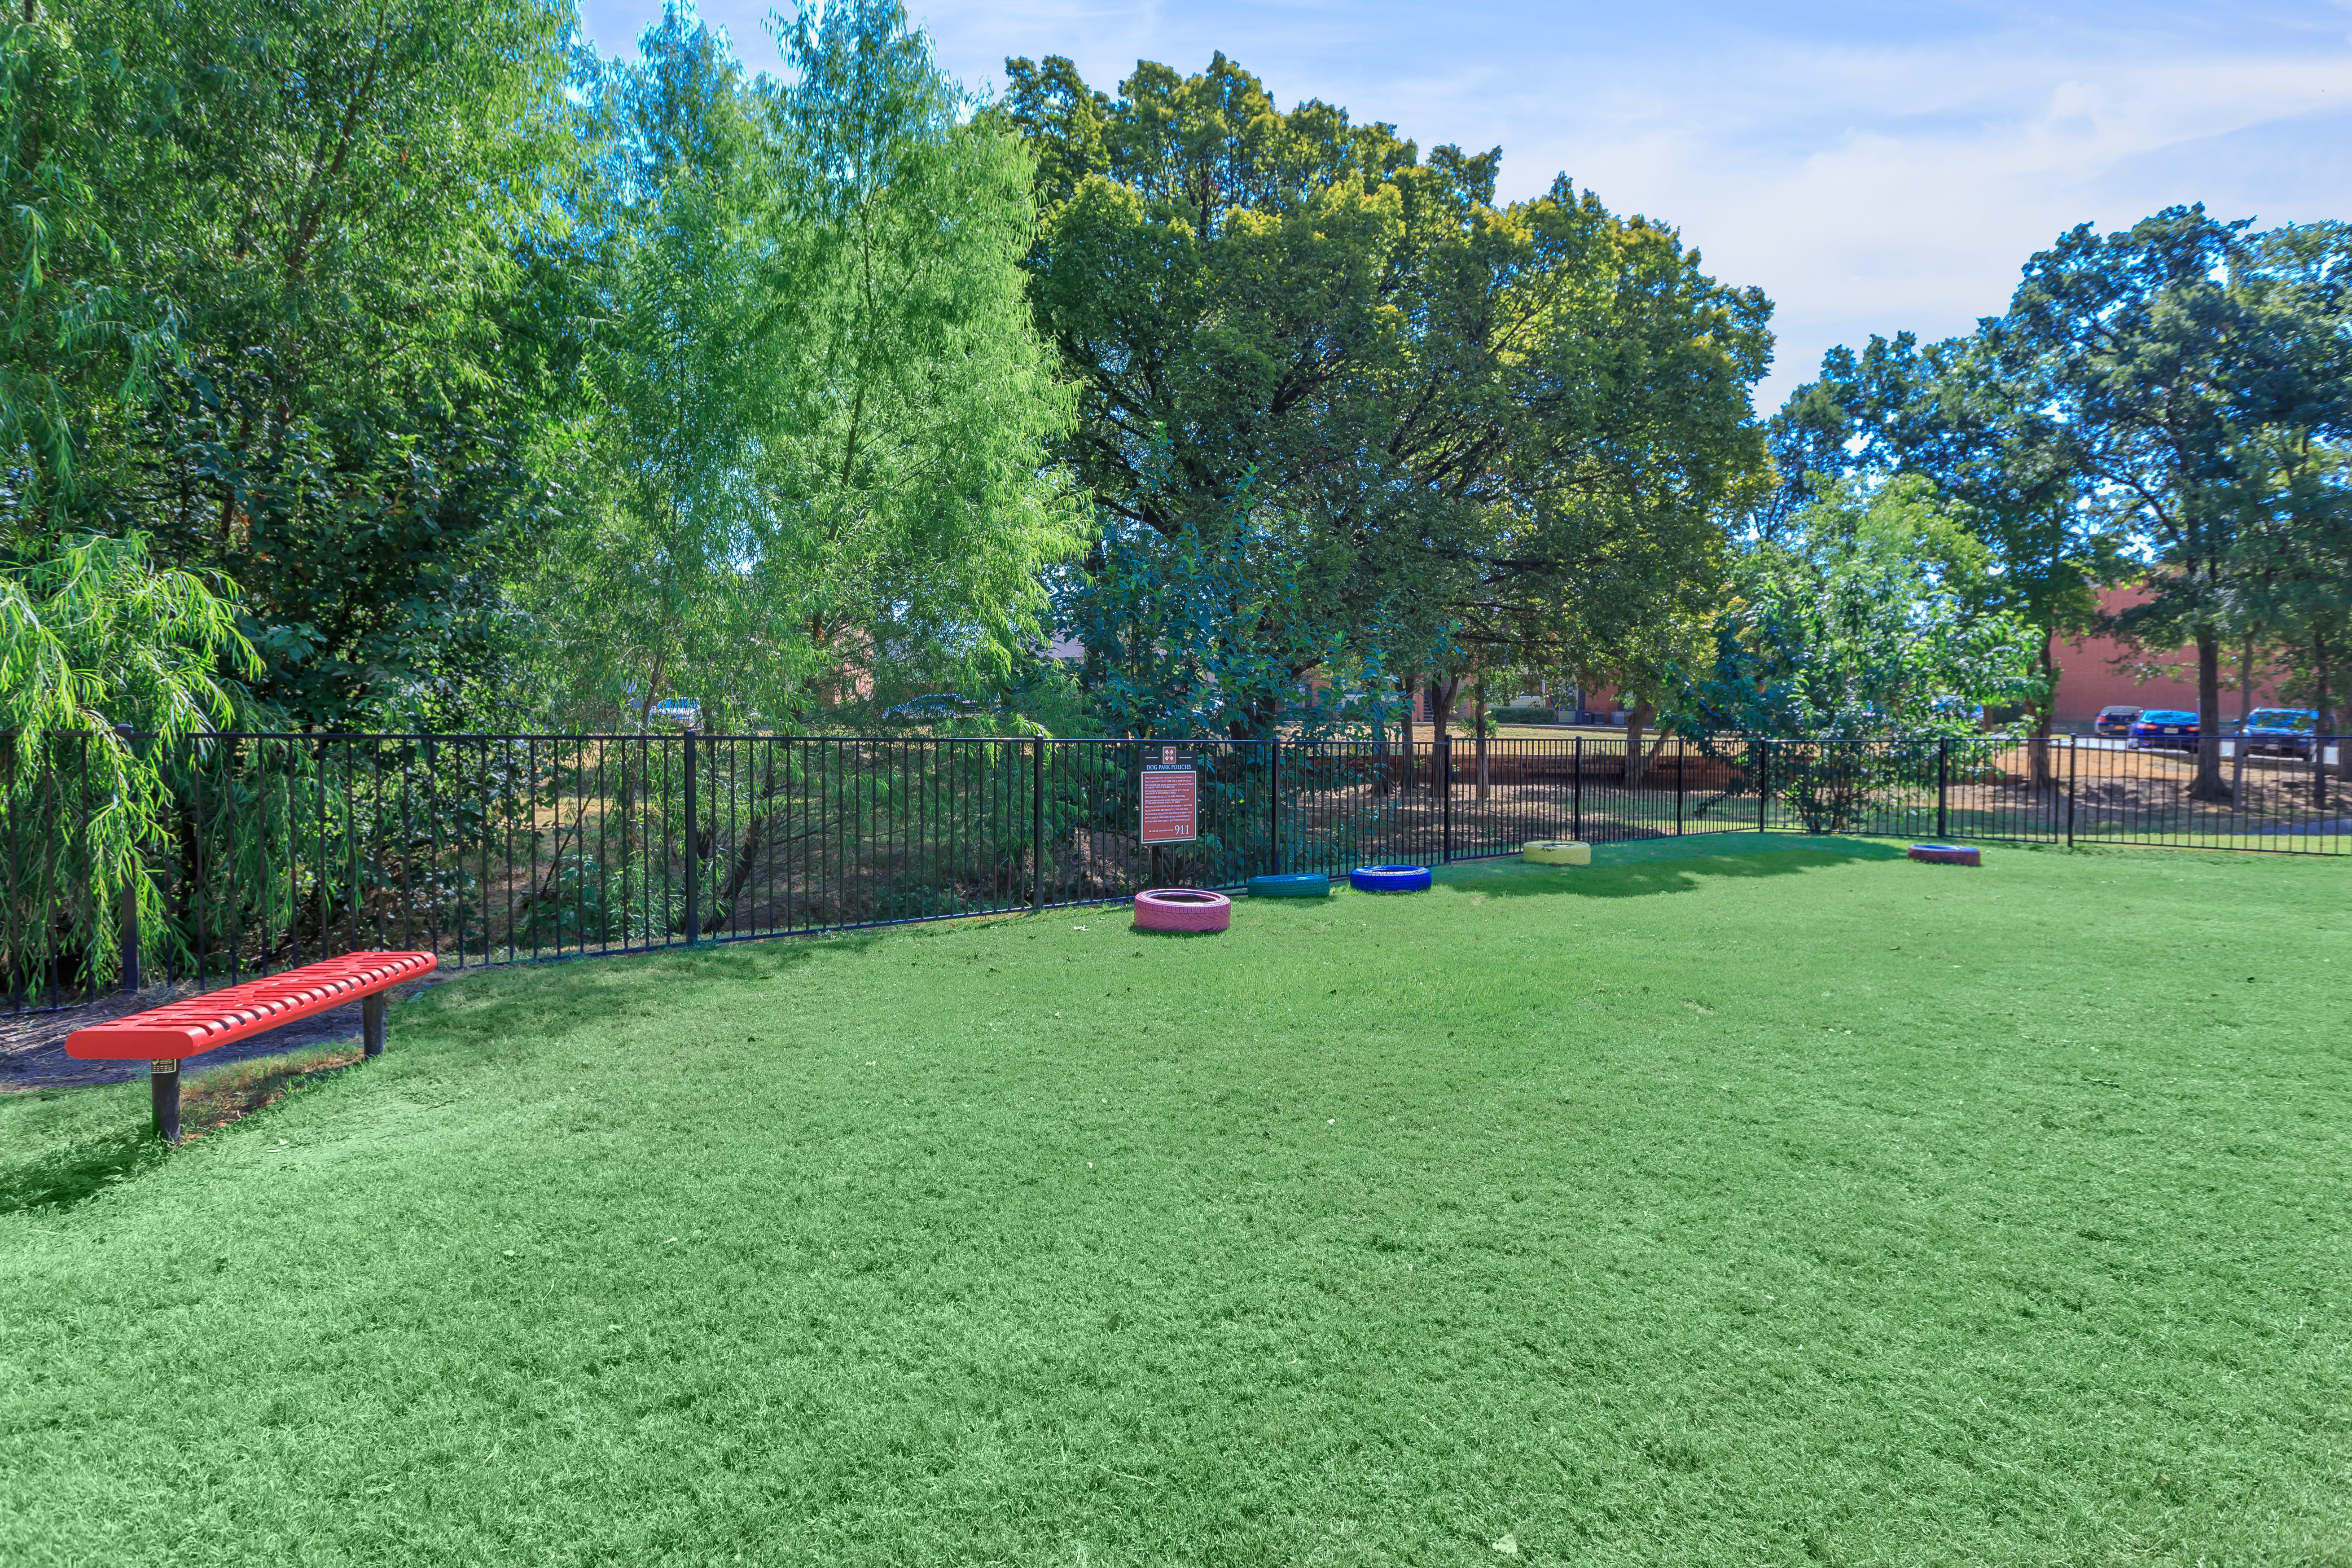 Dog park at Windmill Terrace in Bedford, Texas